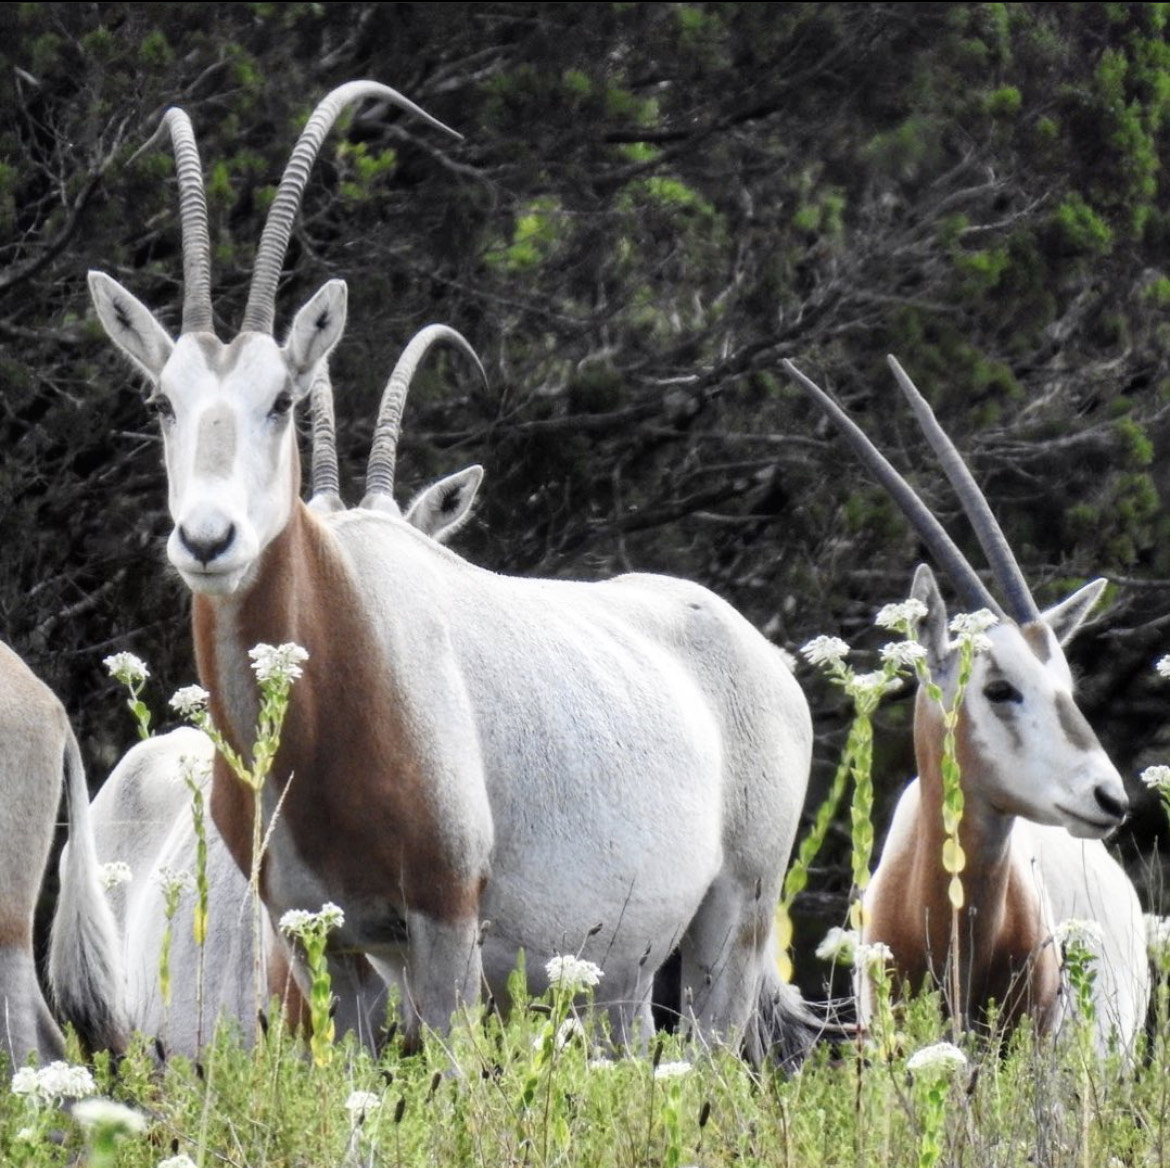 Texas Scimitar Horned Oryx